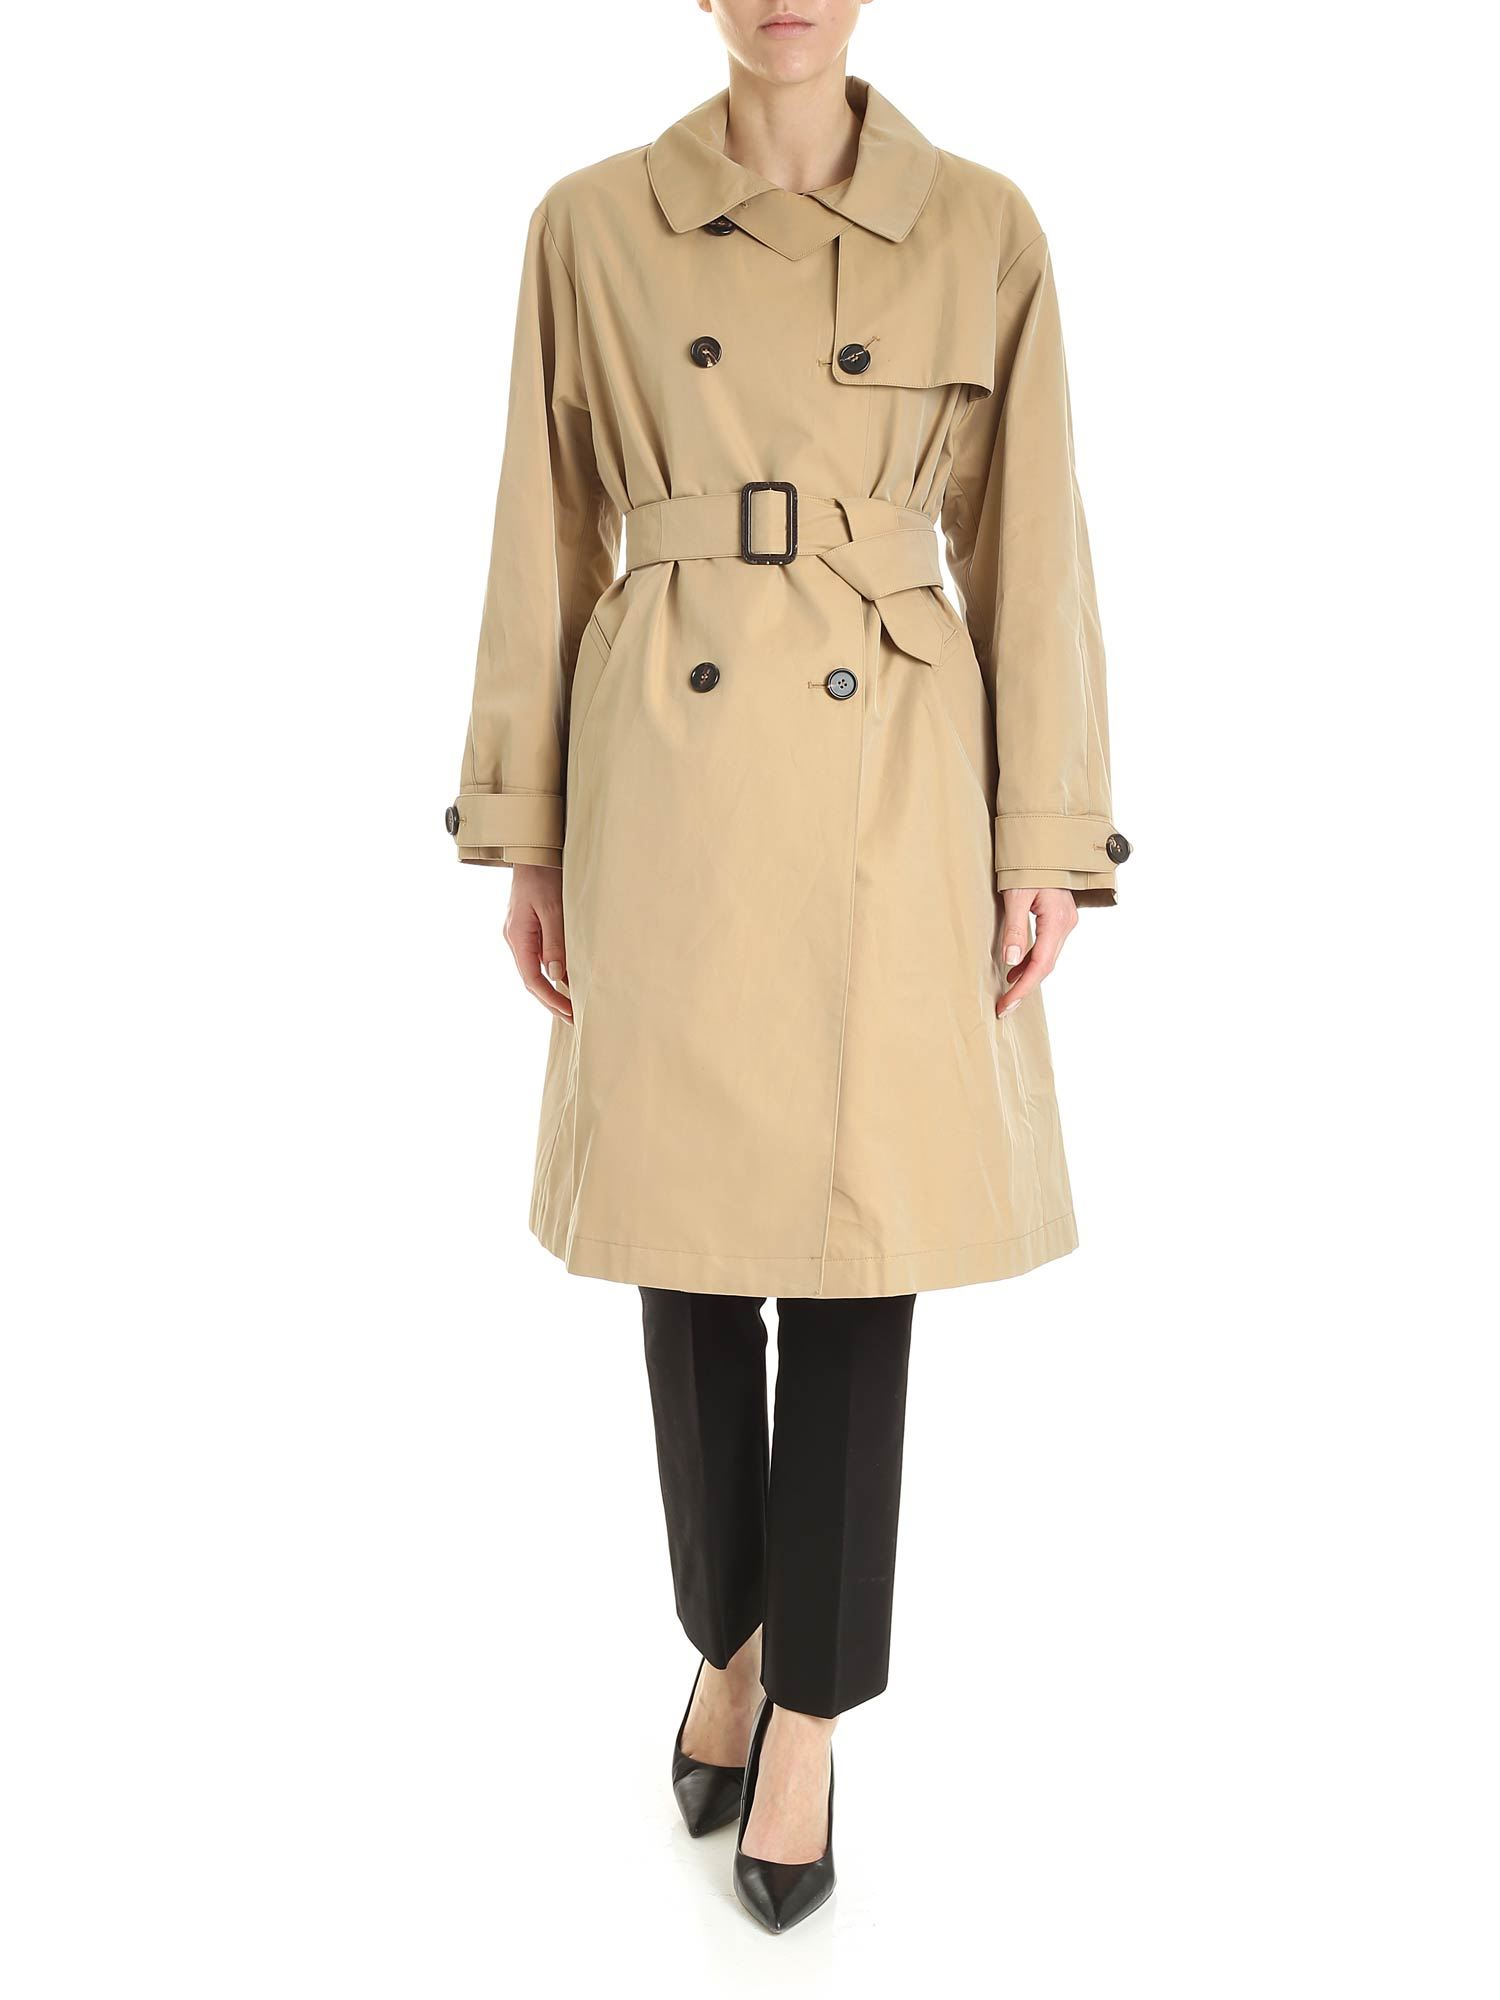 Max Mara Cottons THE CUBE CTRENCH TRENCH COAT IN BEIGE